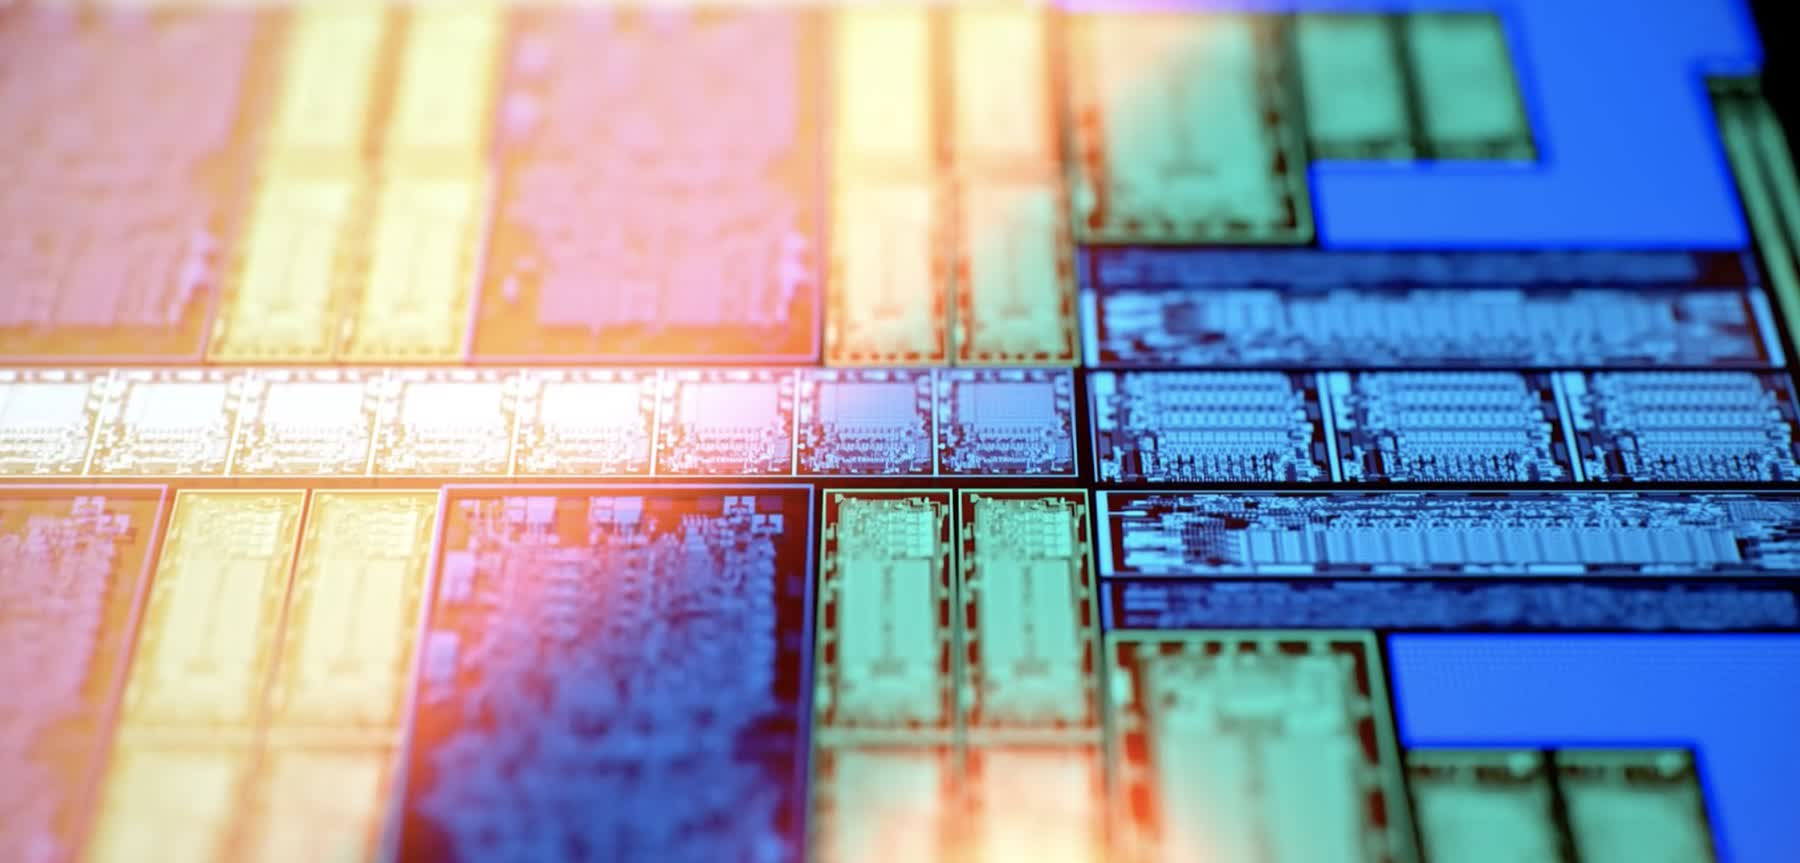 Foundries look to GAAFET for new process nodes beyond 3 nm